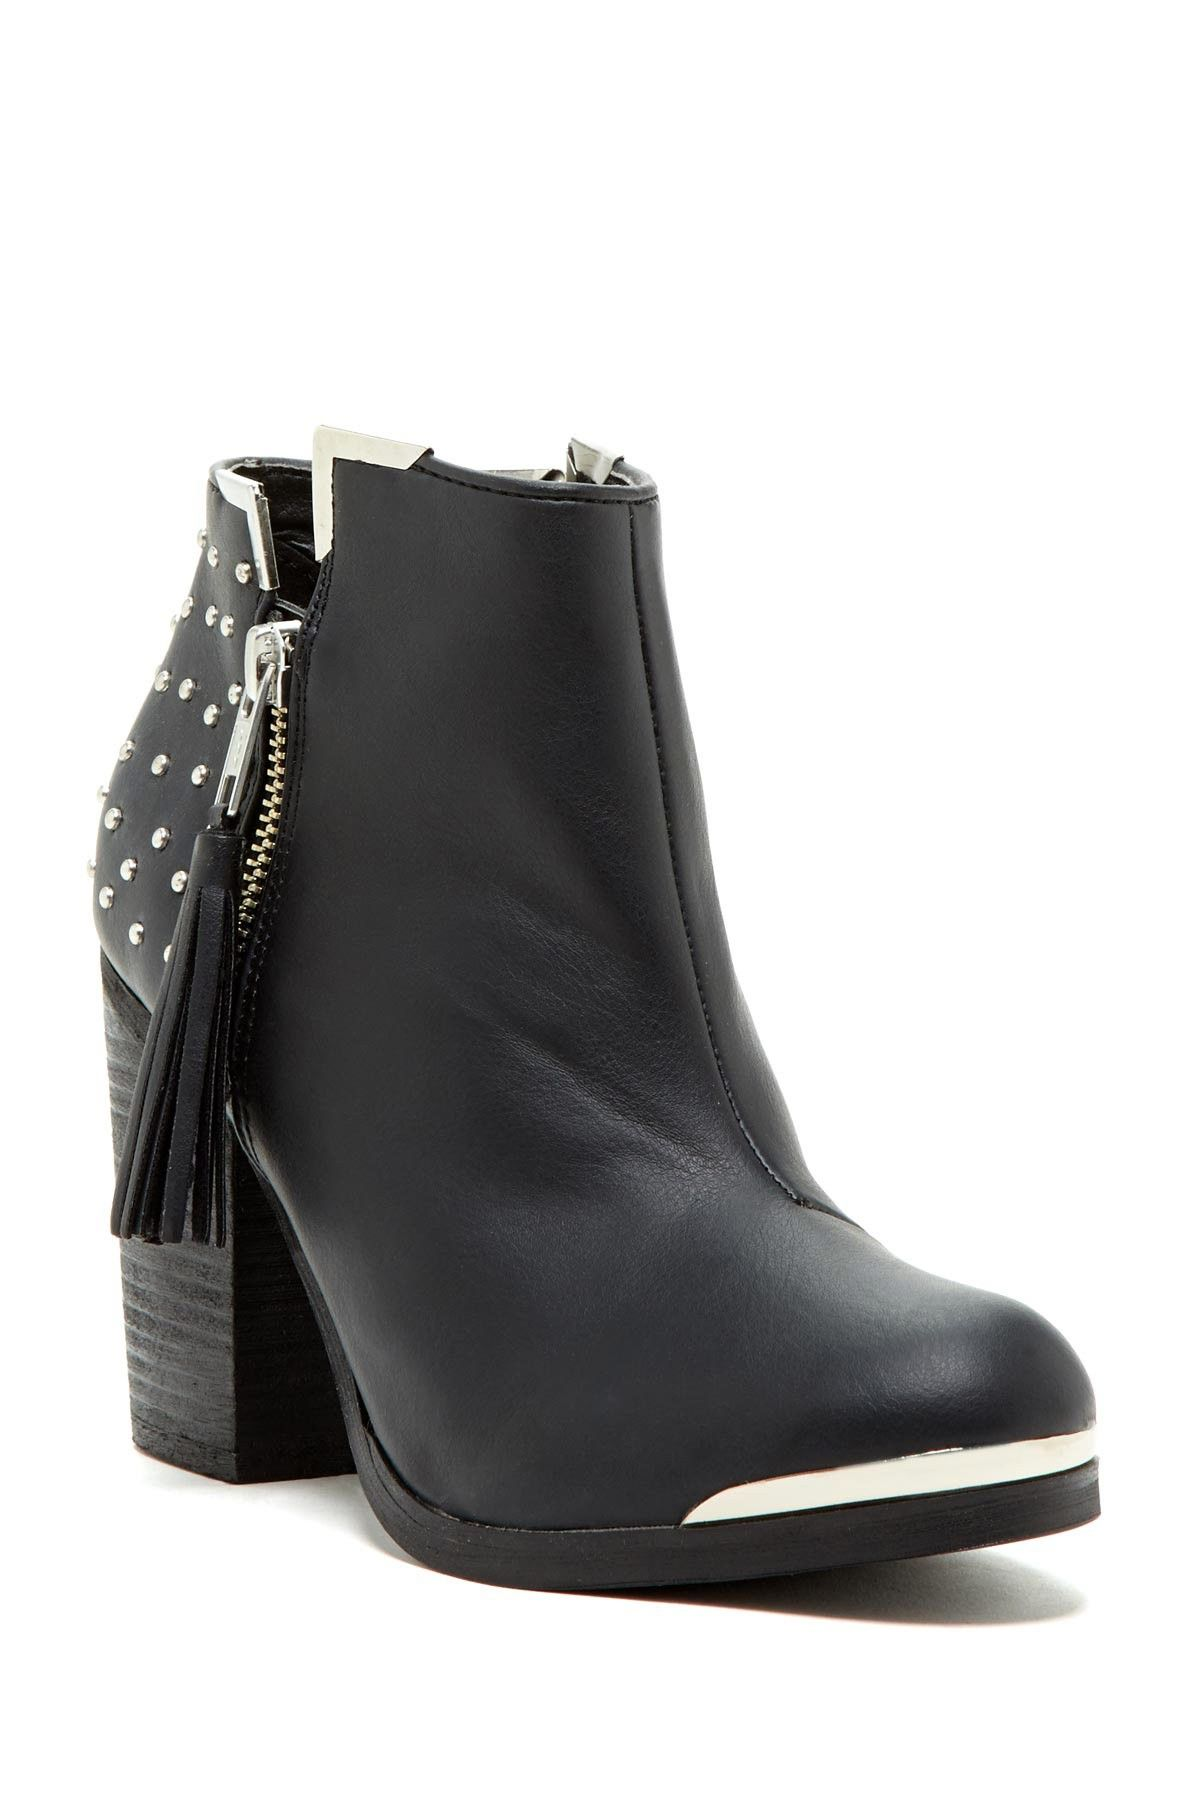 339db6568 MTNG Studded Bootie on HauteLook | Clothes I want <3 | Shoes, Shoe ...